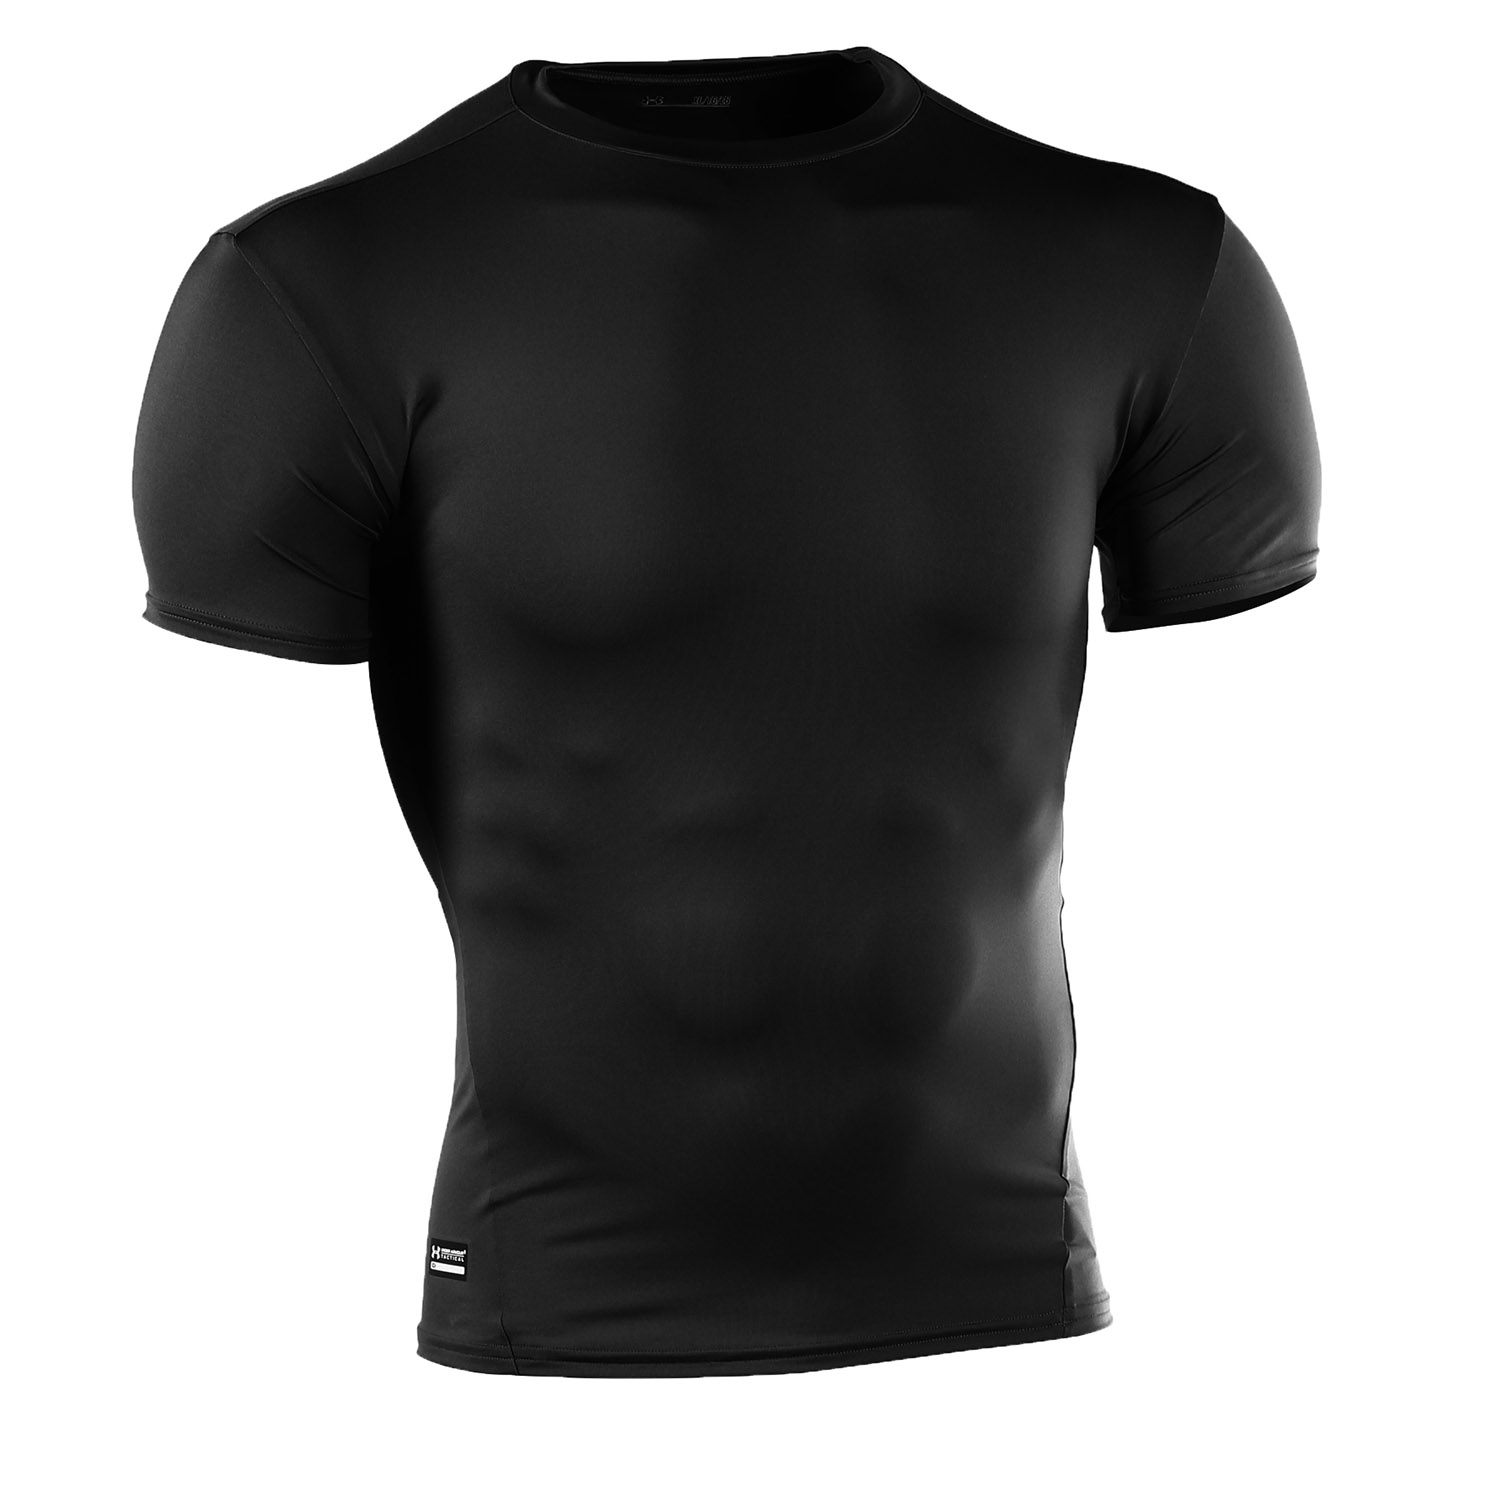 927a140da Under Armour HeatGear Compression T-Shirt for Men